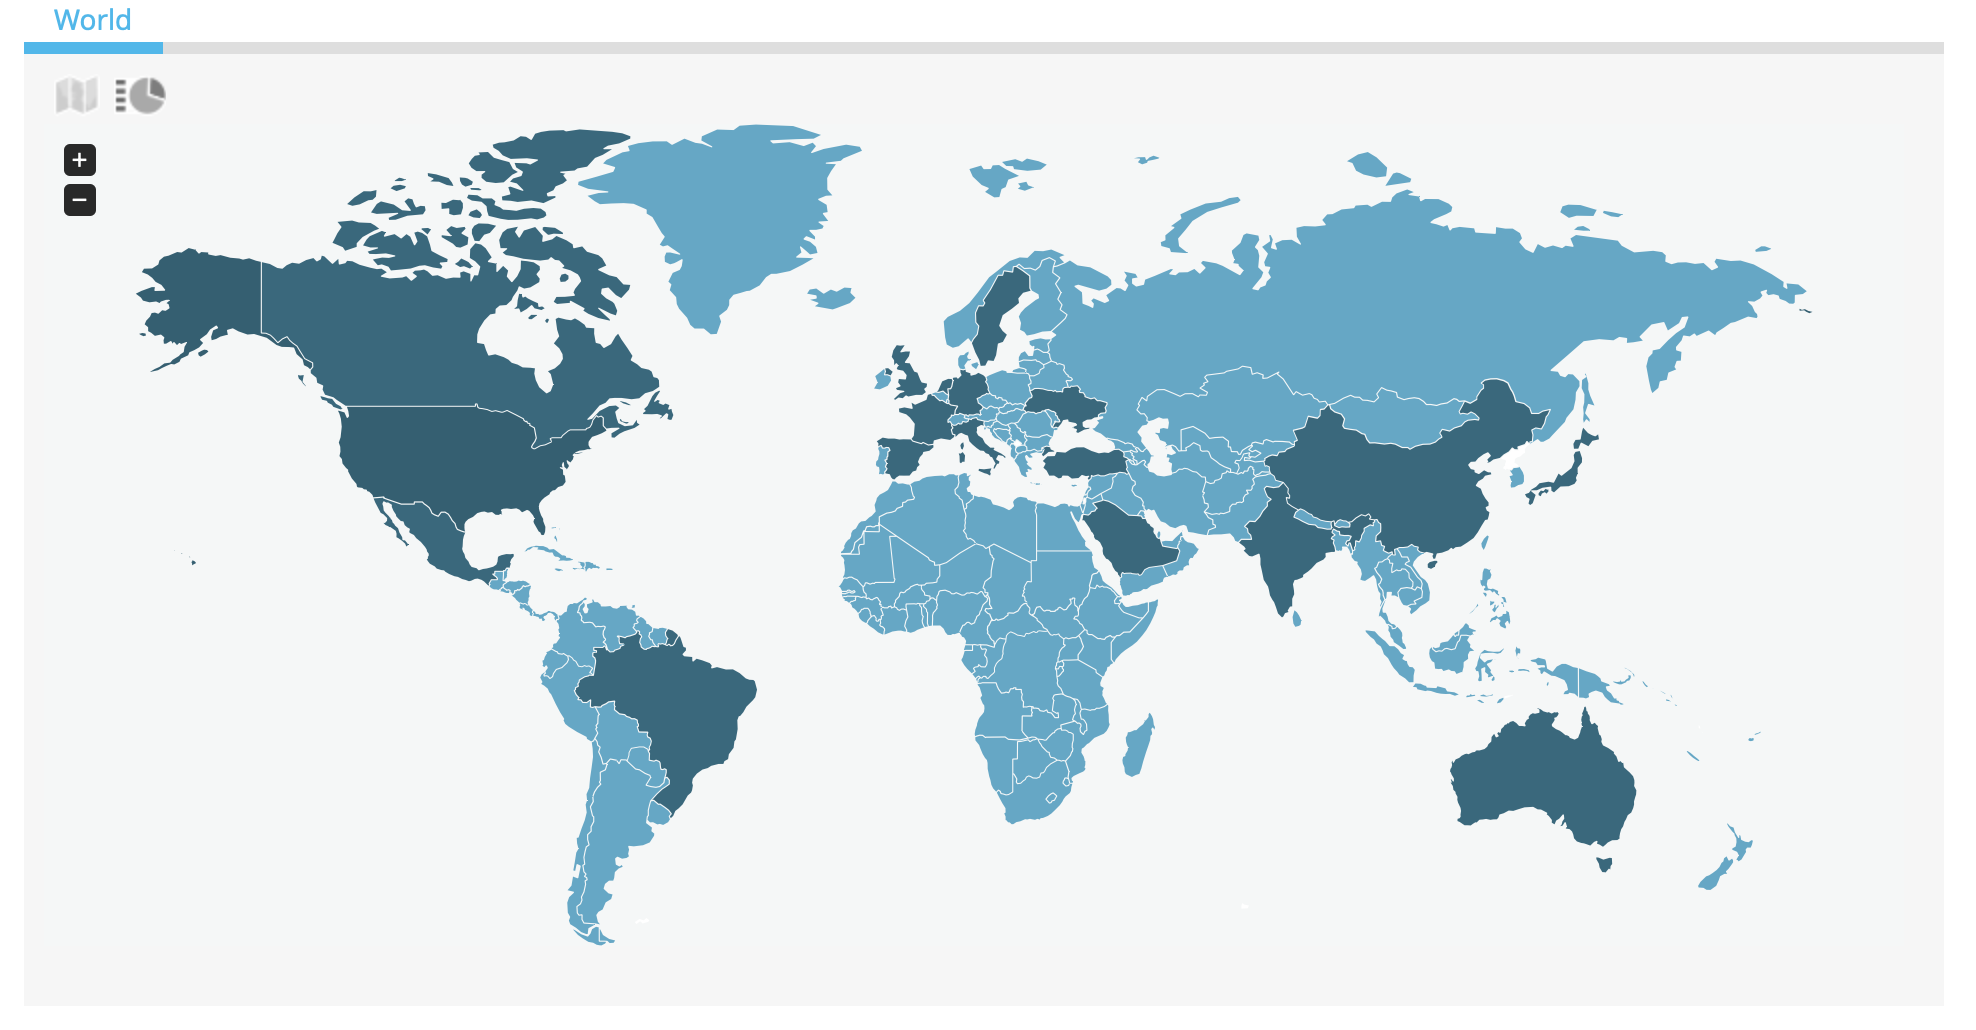 A map of the world with highlighted countries Amazon affiliate links work from.